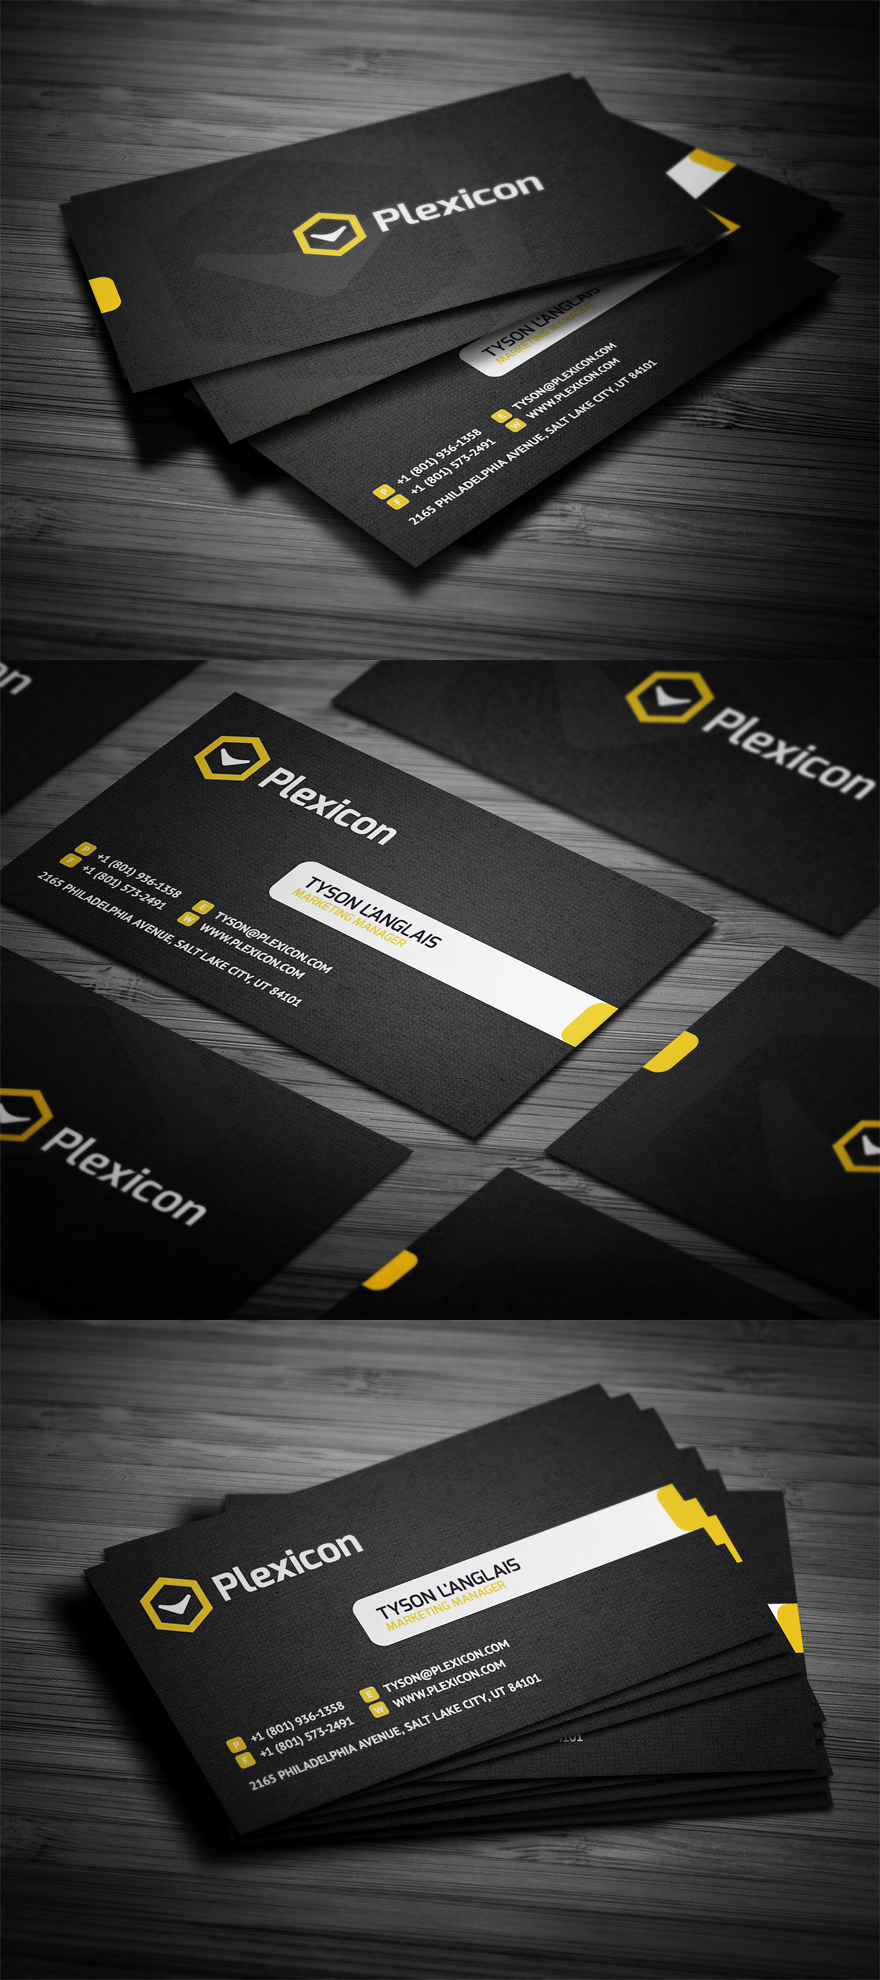 Stylish Business Card | Business Card Design | Pinterest | Business ...